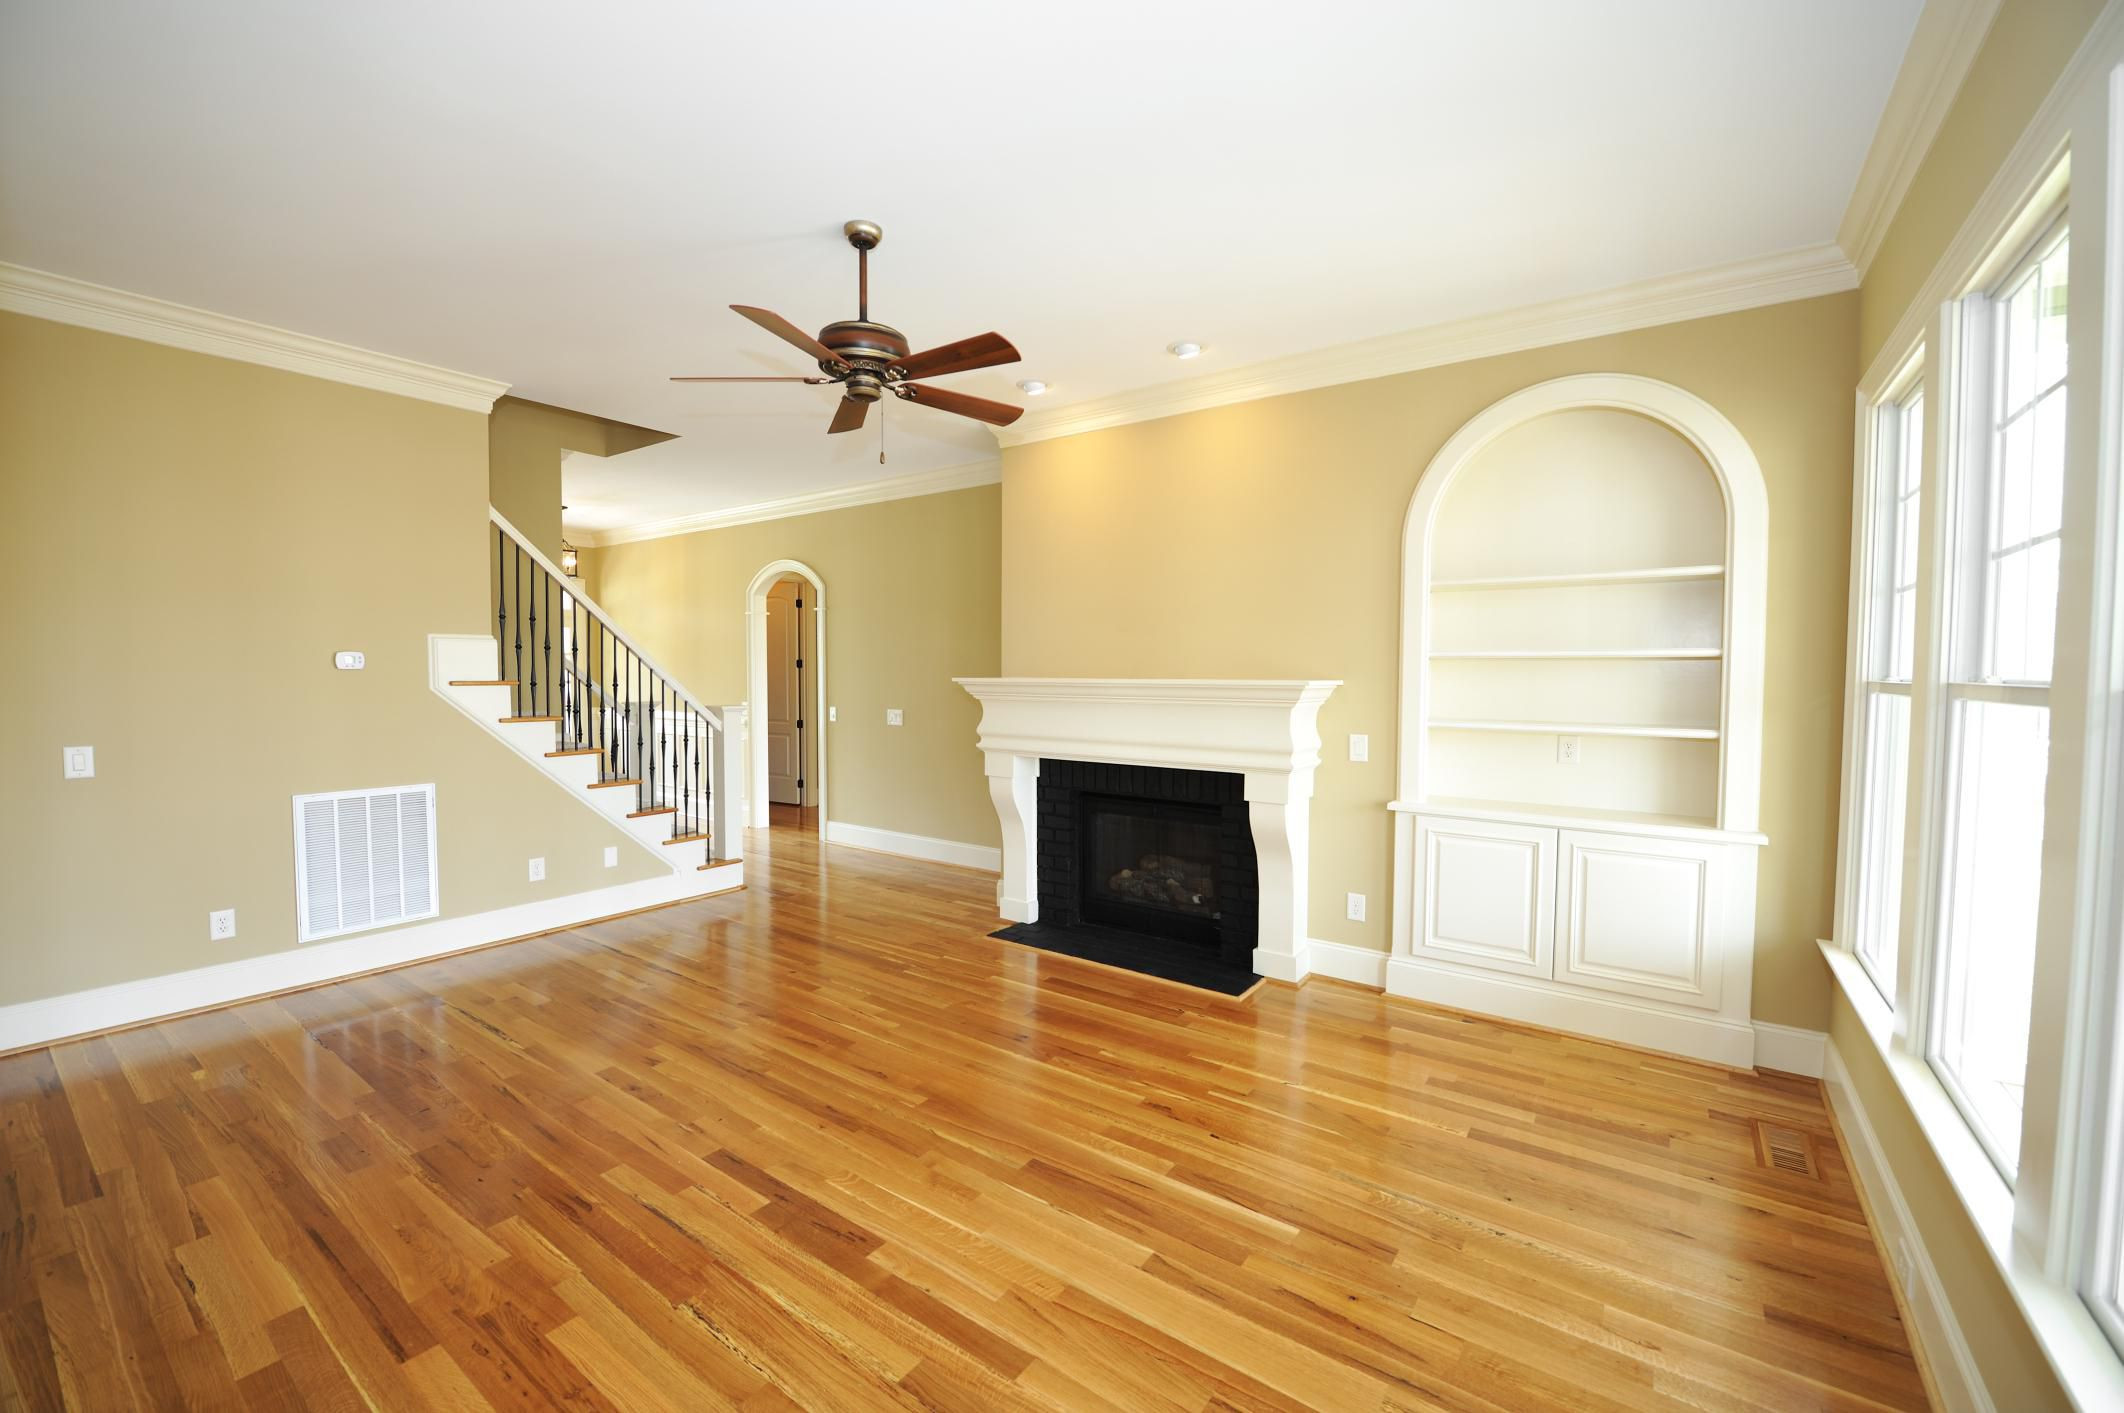 2 inch white oak hardwood flooring of solid and engineered wood flooring for 157328869 56a4a2ac5f9b58b7d0d7ef49